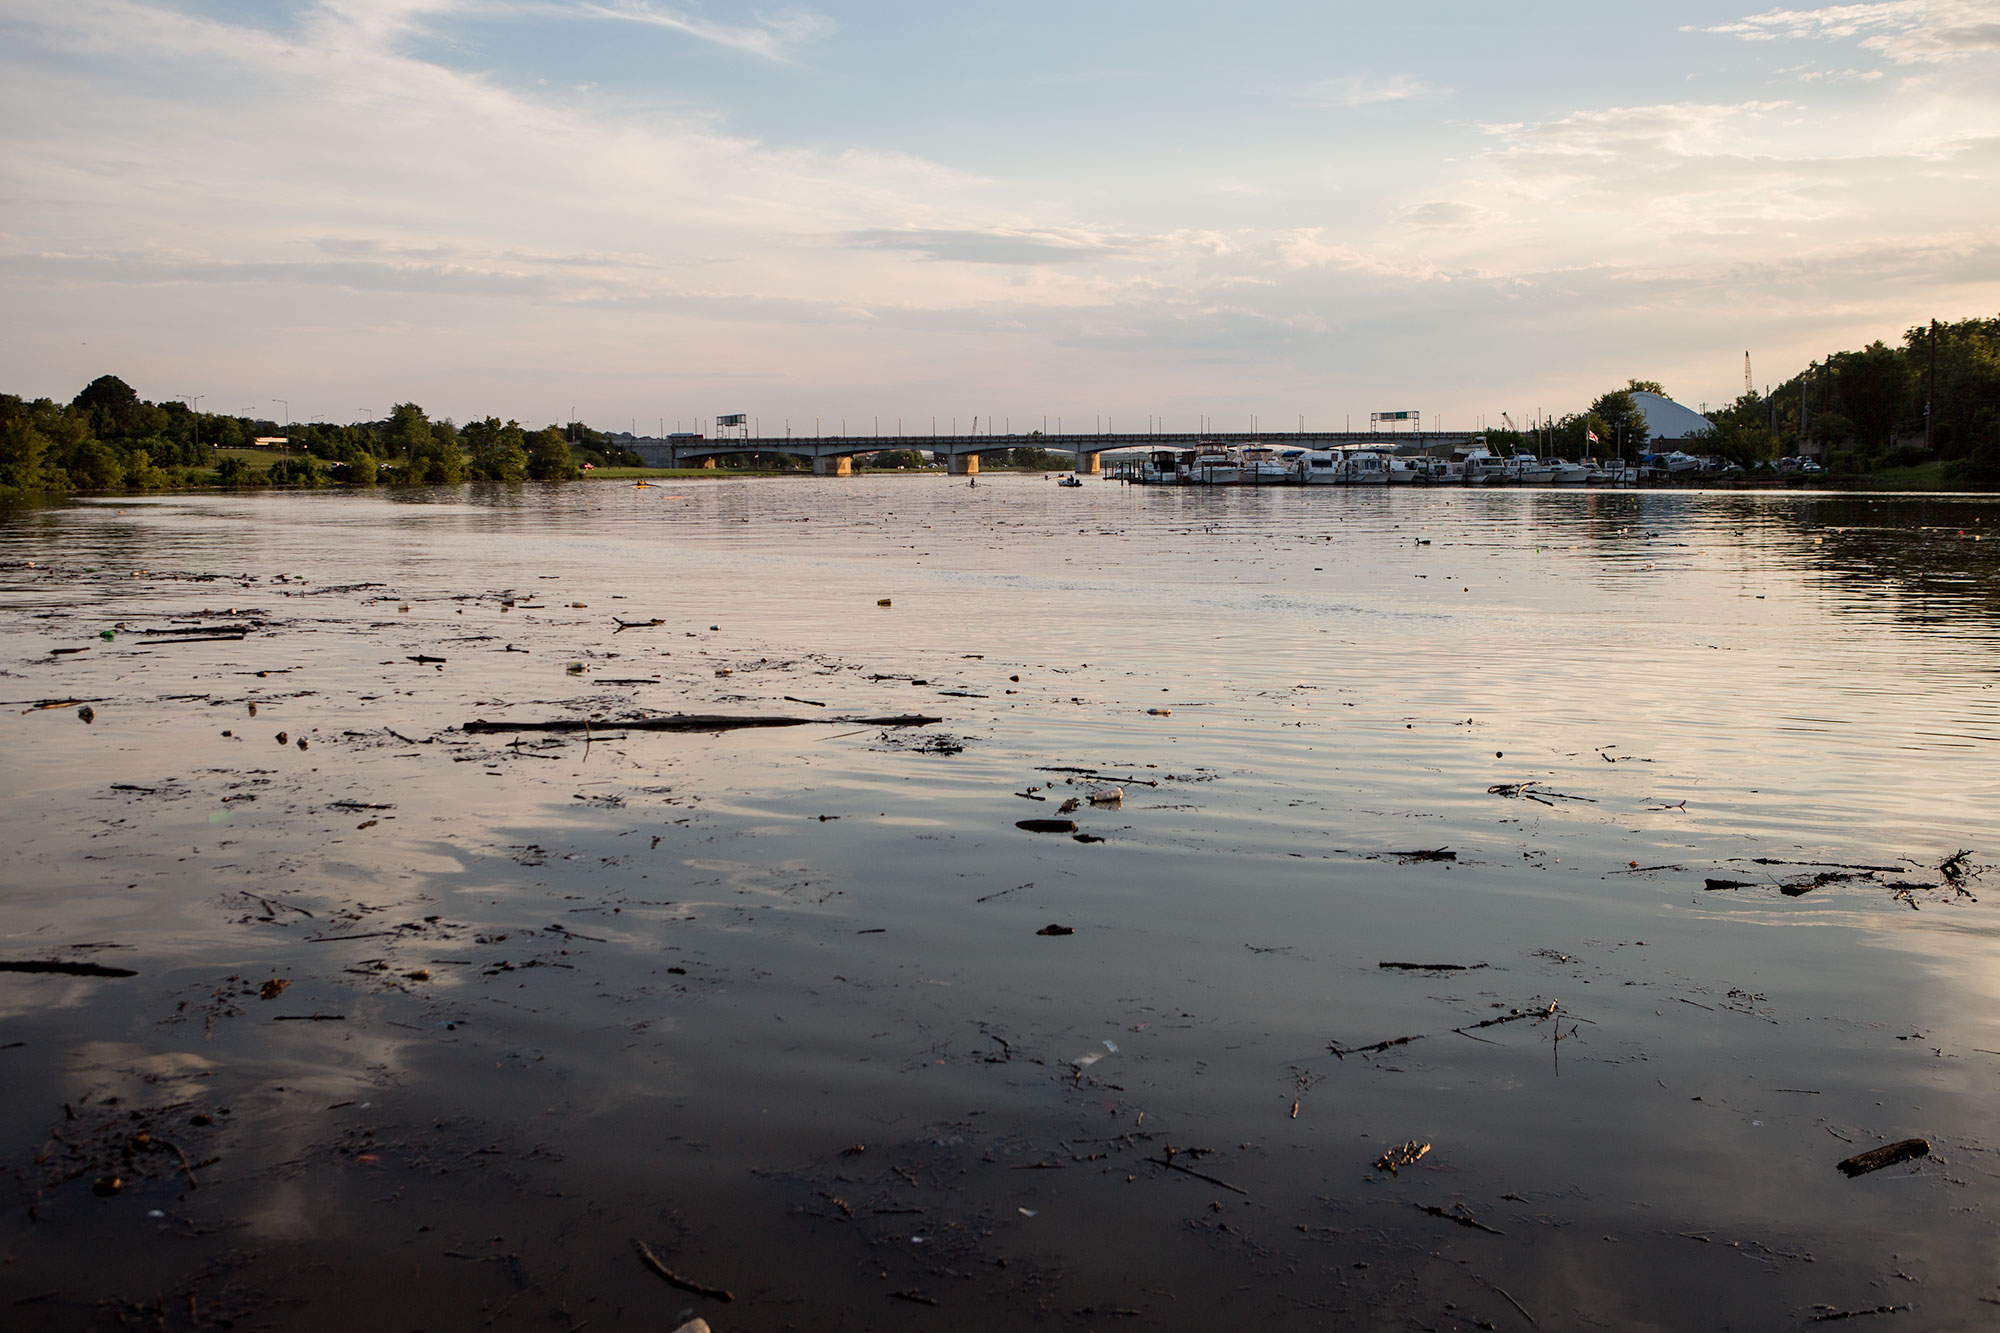 A quiet evening view of the Anacostia River in 2017 after a heavy rain, which stirred up debris in the river. The Seafarers clubhouse and the Pennsylvania Avenue bridge appear in the distance.